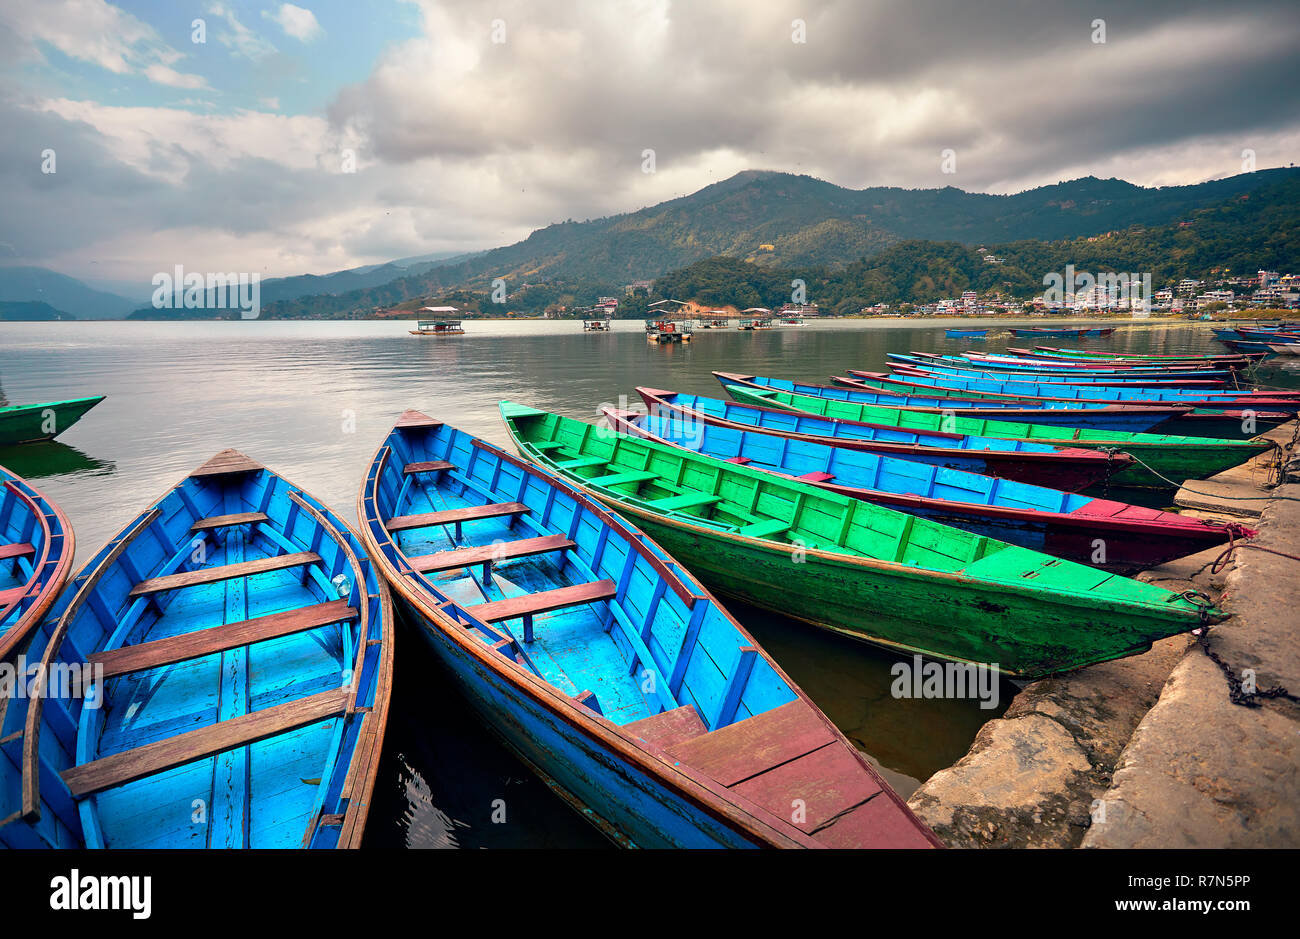 Blue and green boats at Phewa lake shore in Pokhara, Nepal. - Stock Image